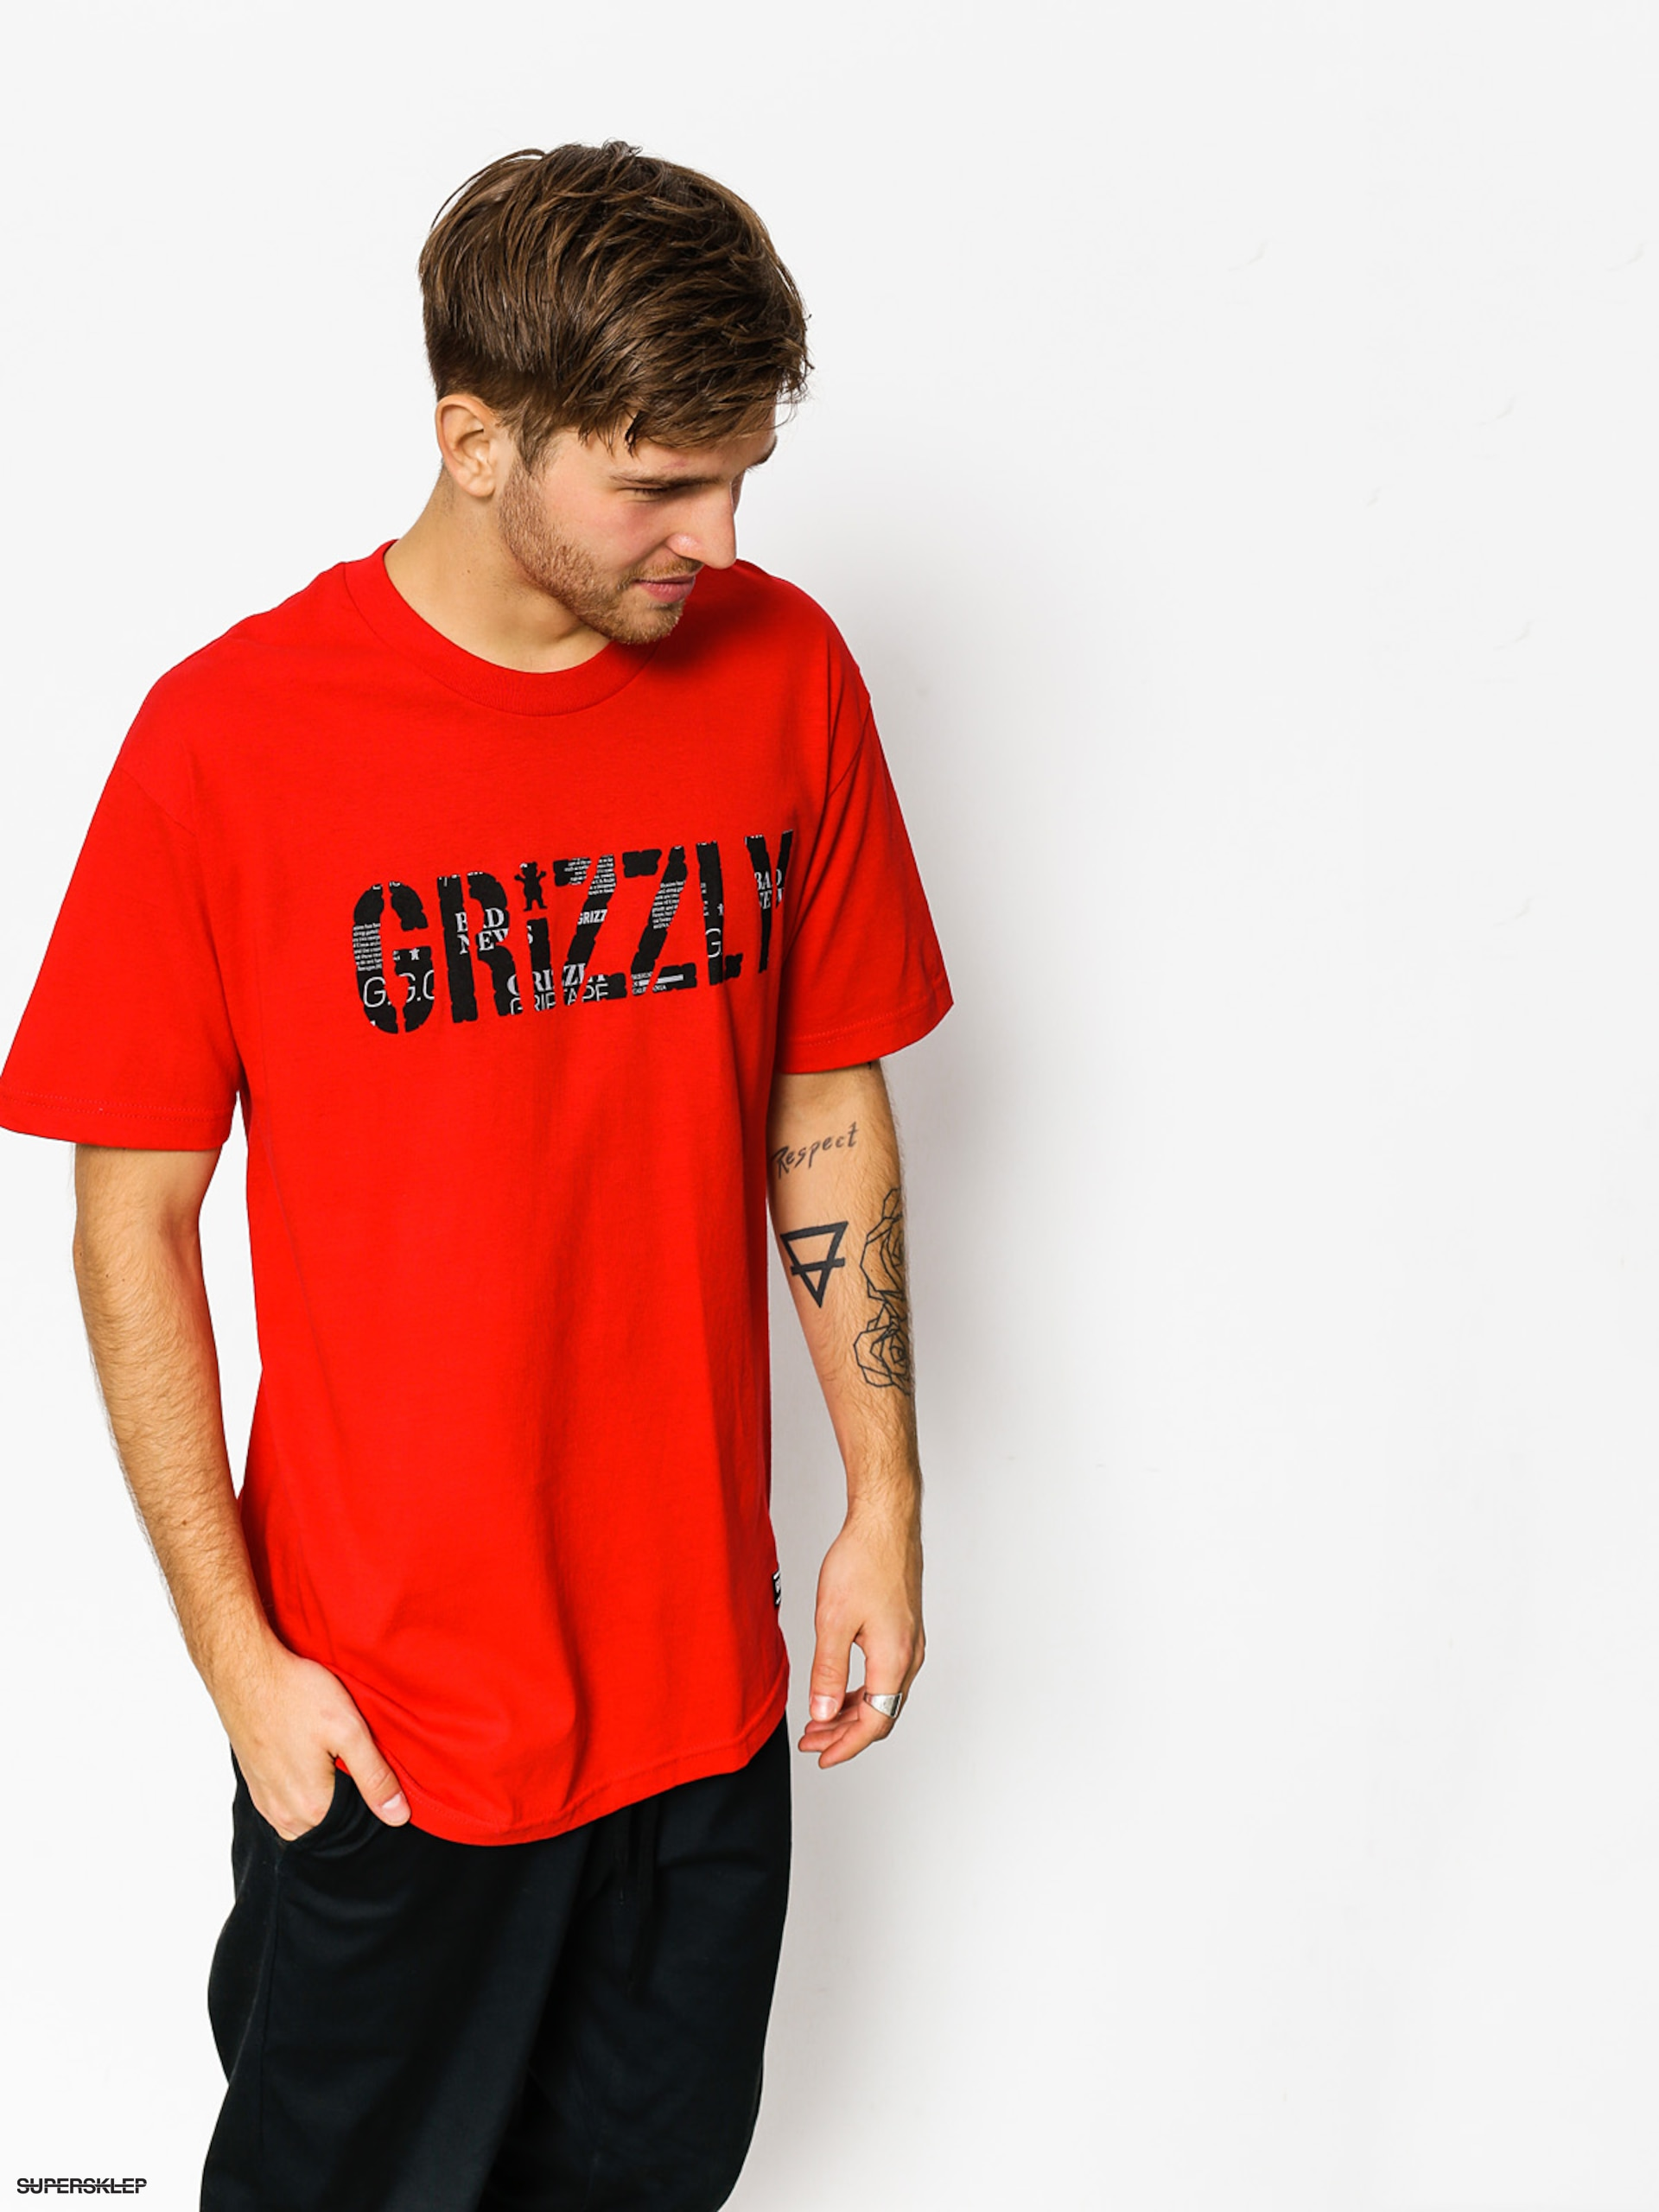 T-shirt Grizzly Griptape Headlines